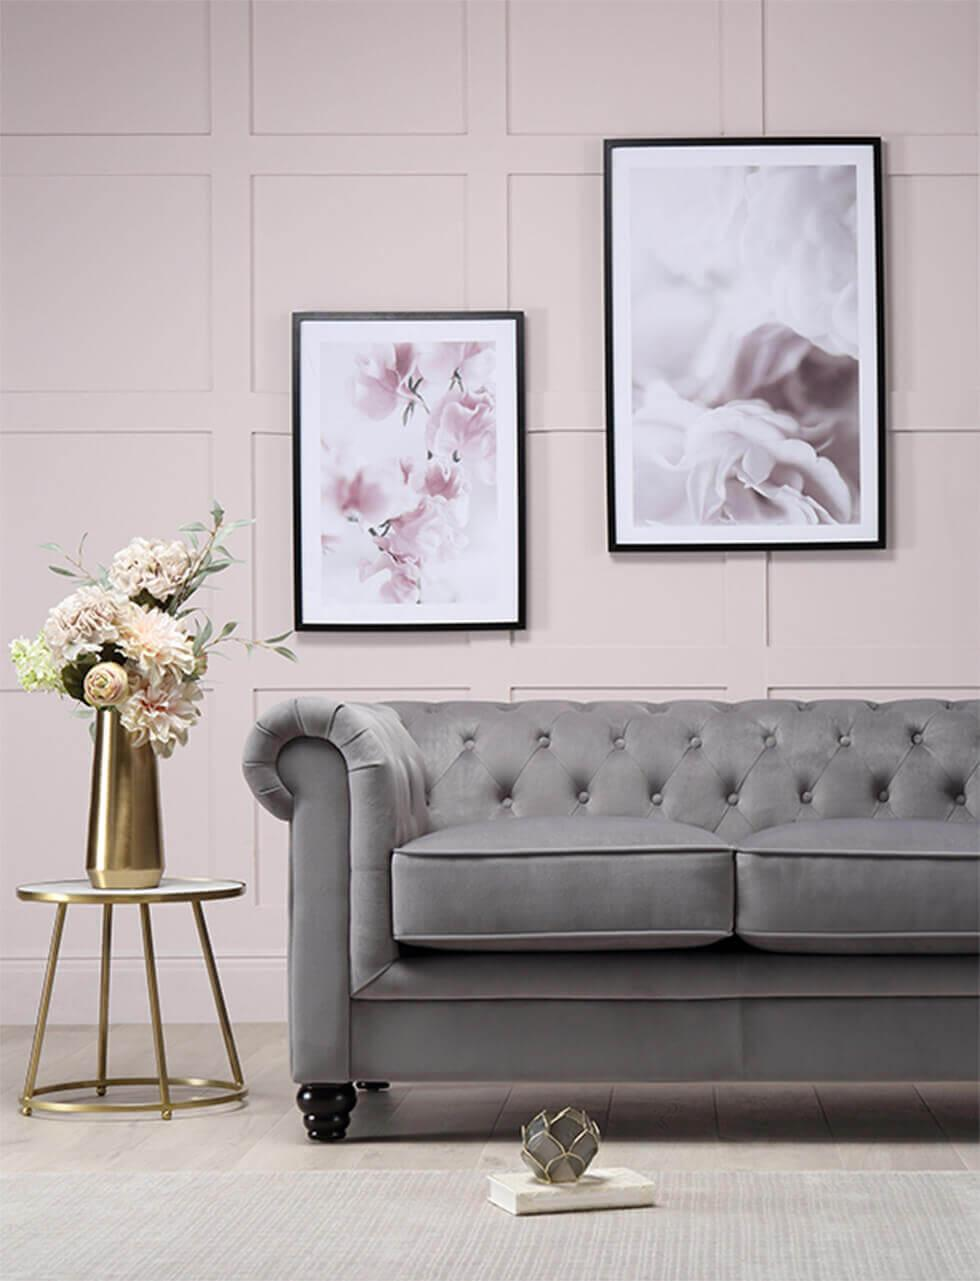 Grey velvet Chesterfield sofa in a muted pink room with a gold vase of flowers